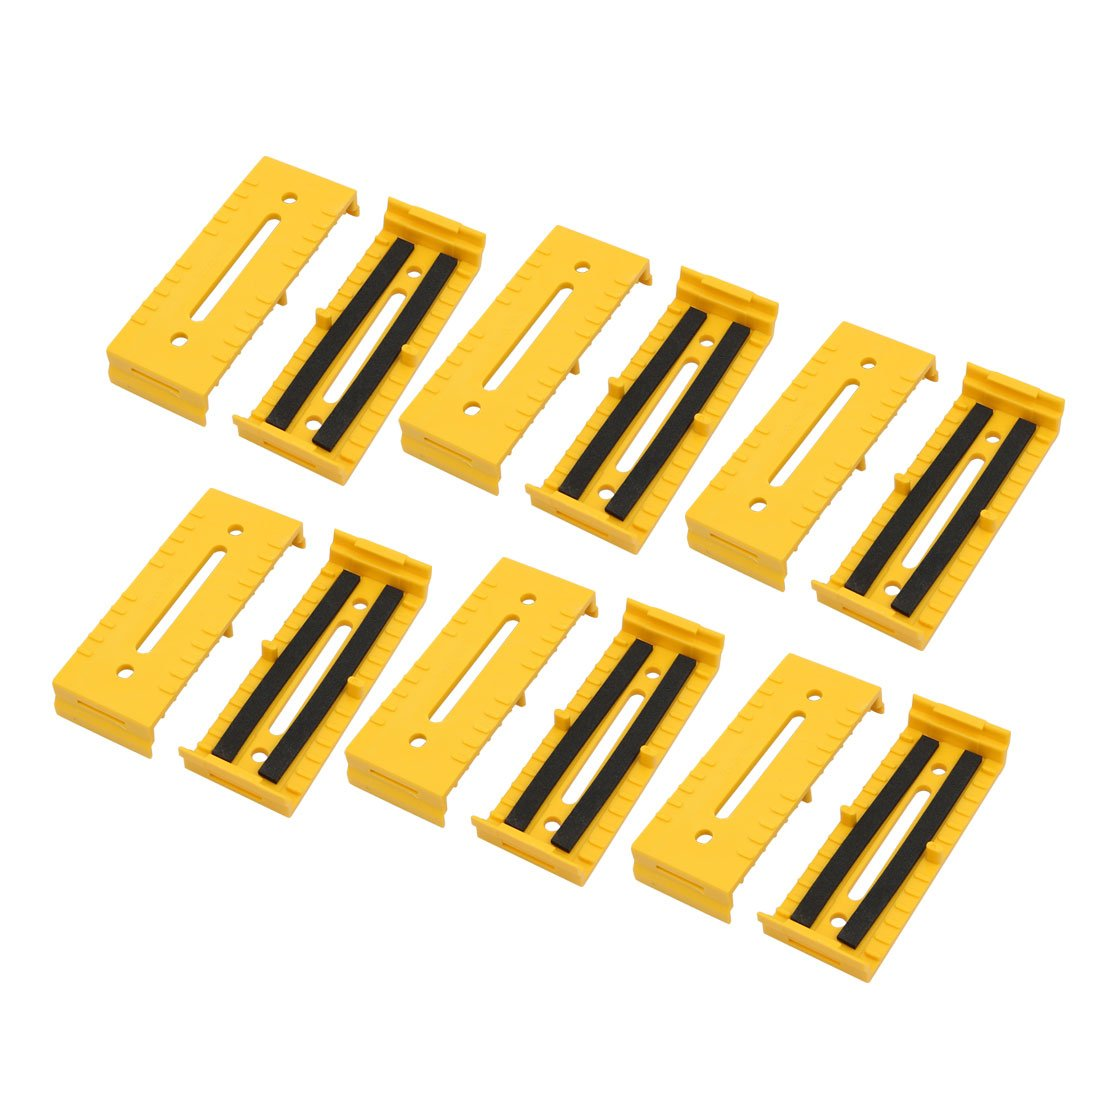 uxcell 12 Pcs Plastic 110mmx40mmx17mm Cable Holder Wire Organizer Yellow for Office